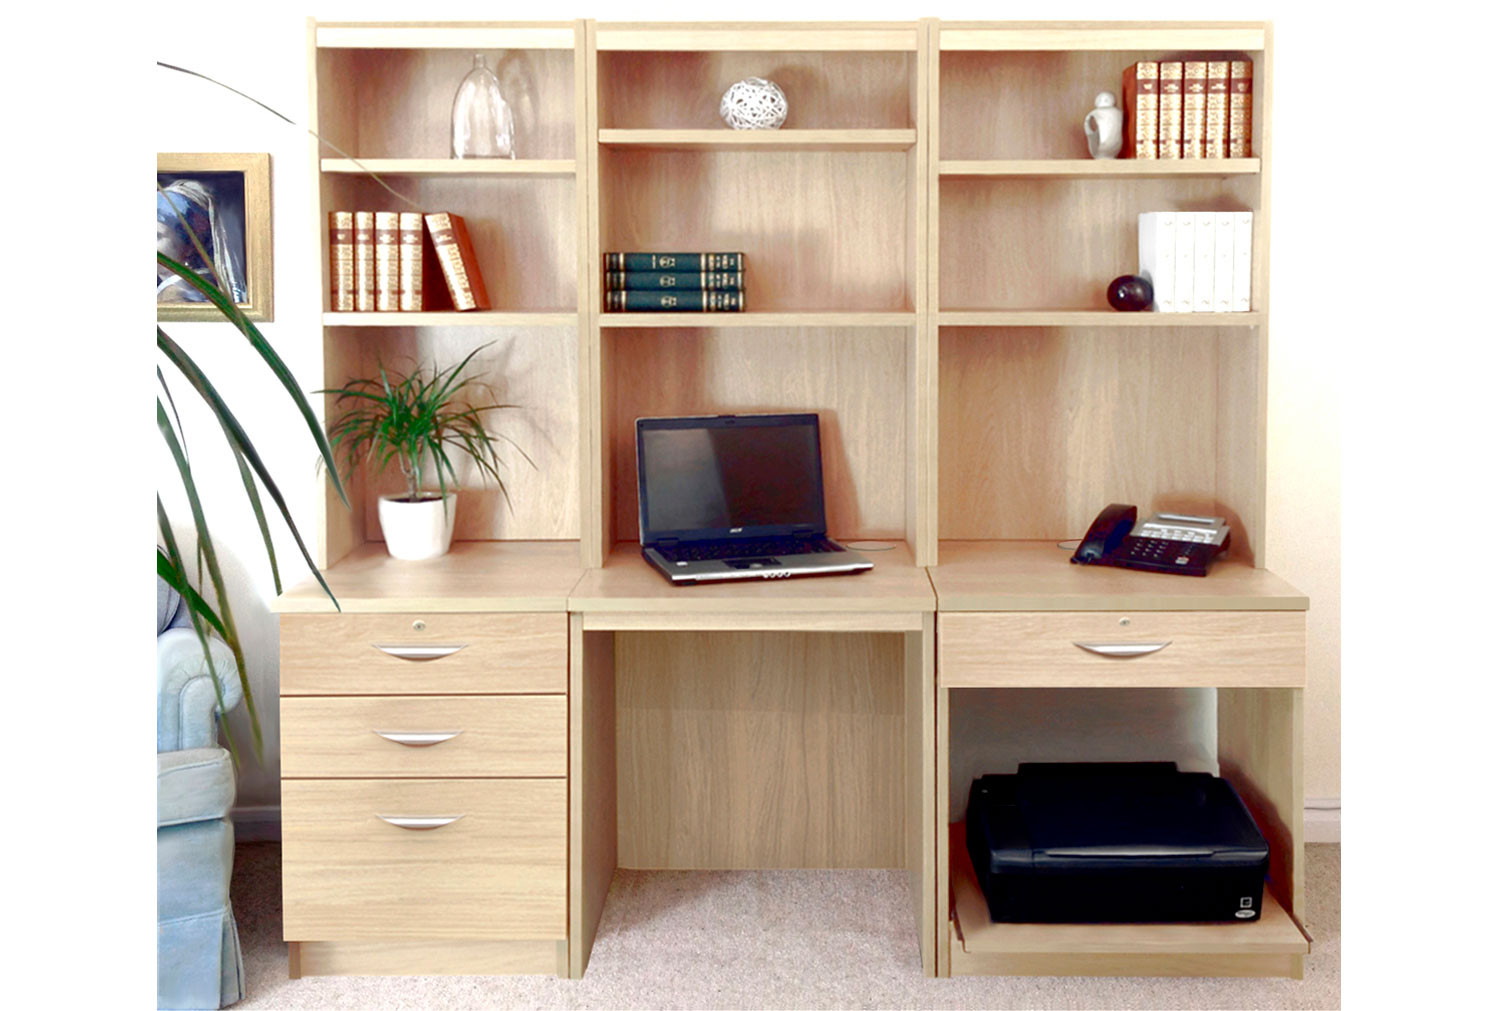 Small Office Desk Set With 3+1 Drawers, Printer Shelf & Hutch Bookcases (Sandstone)